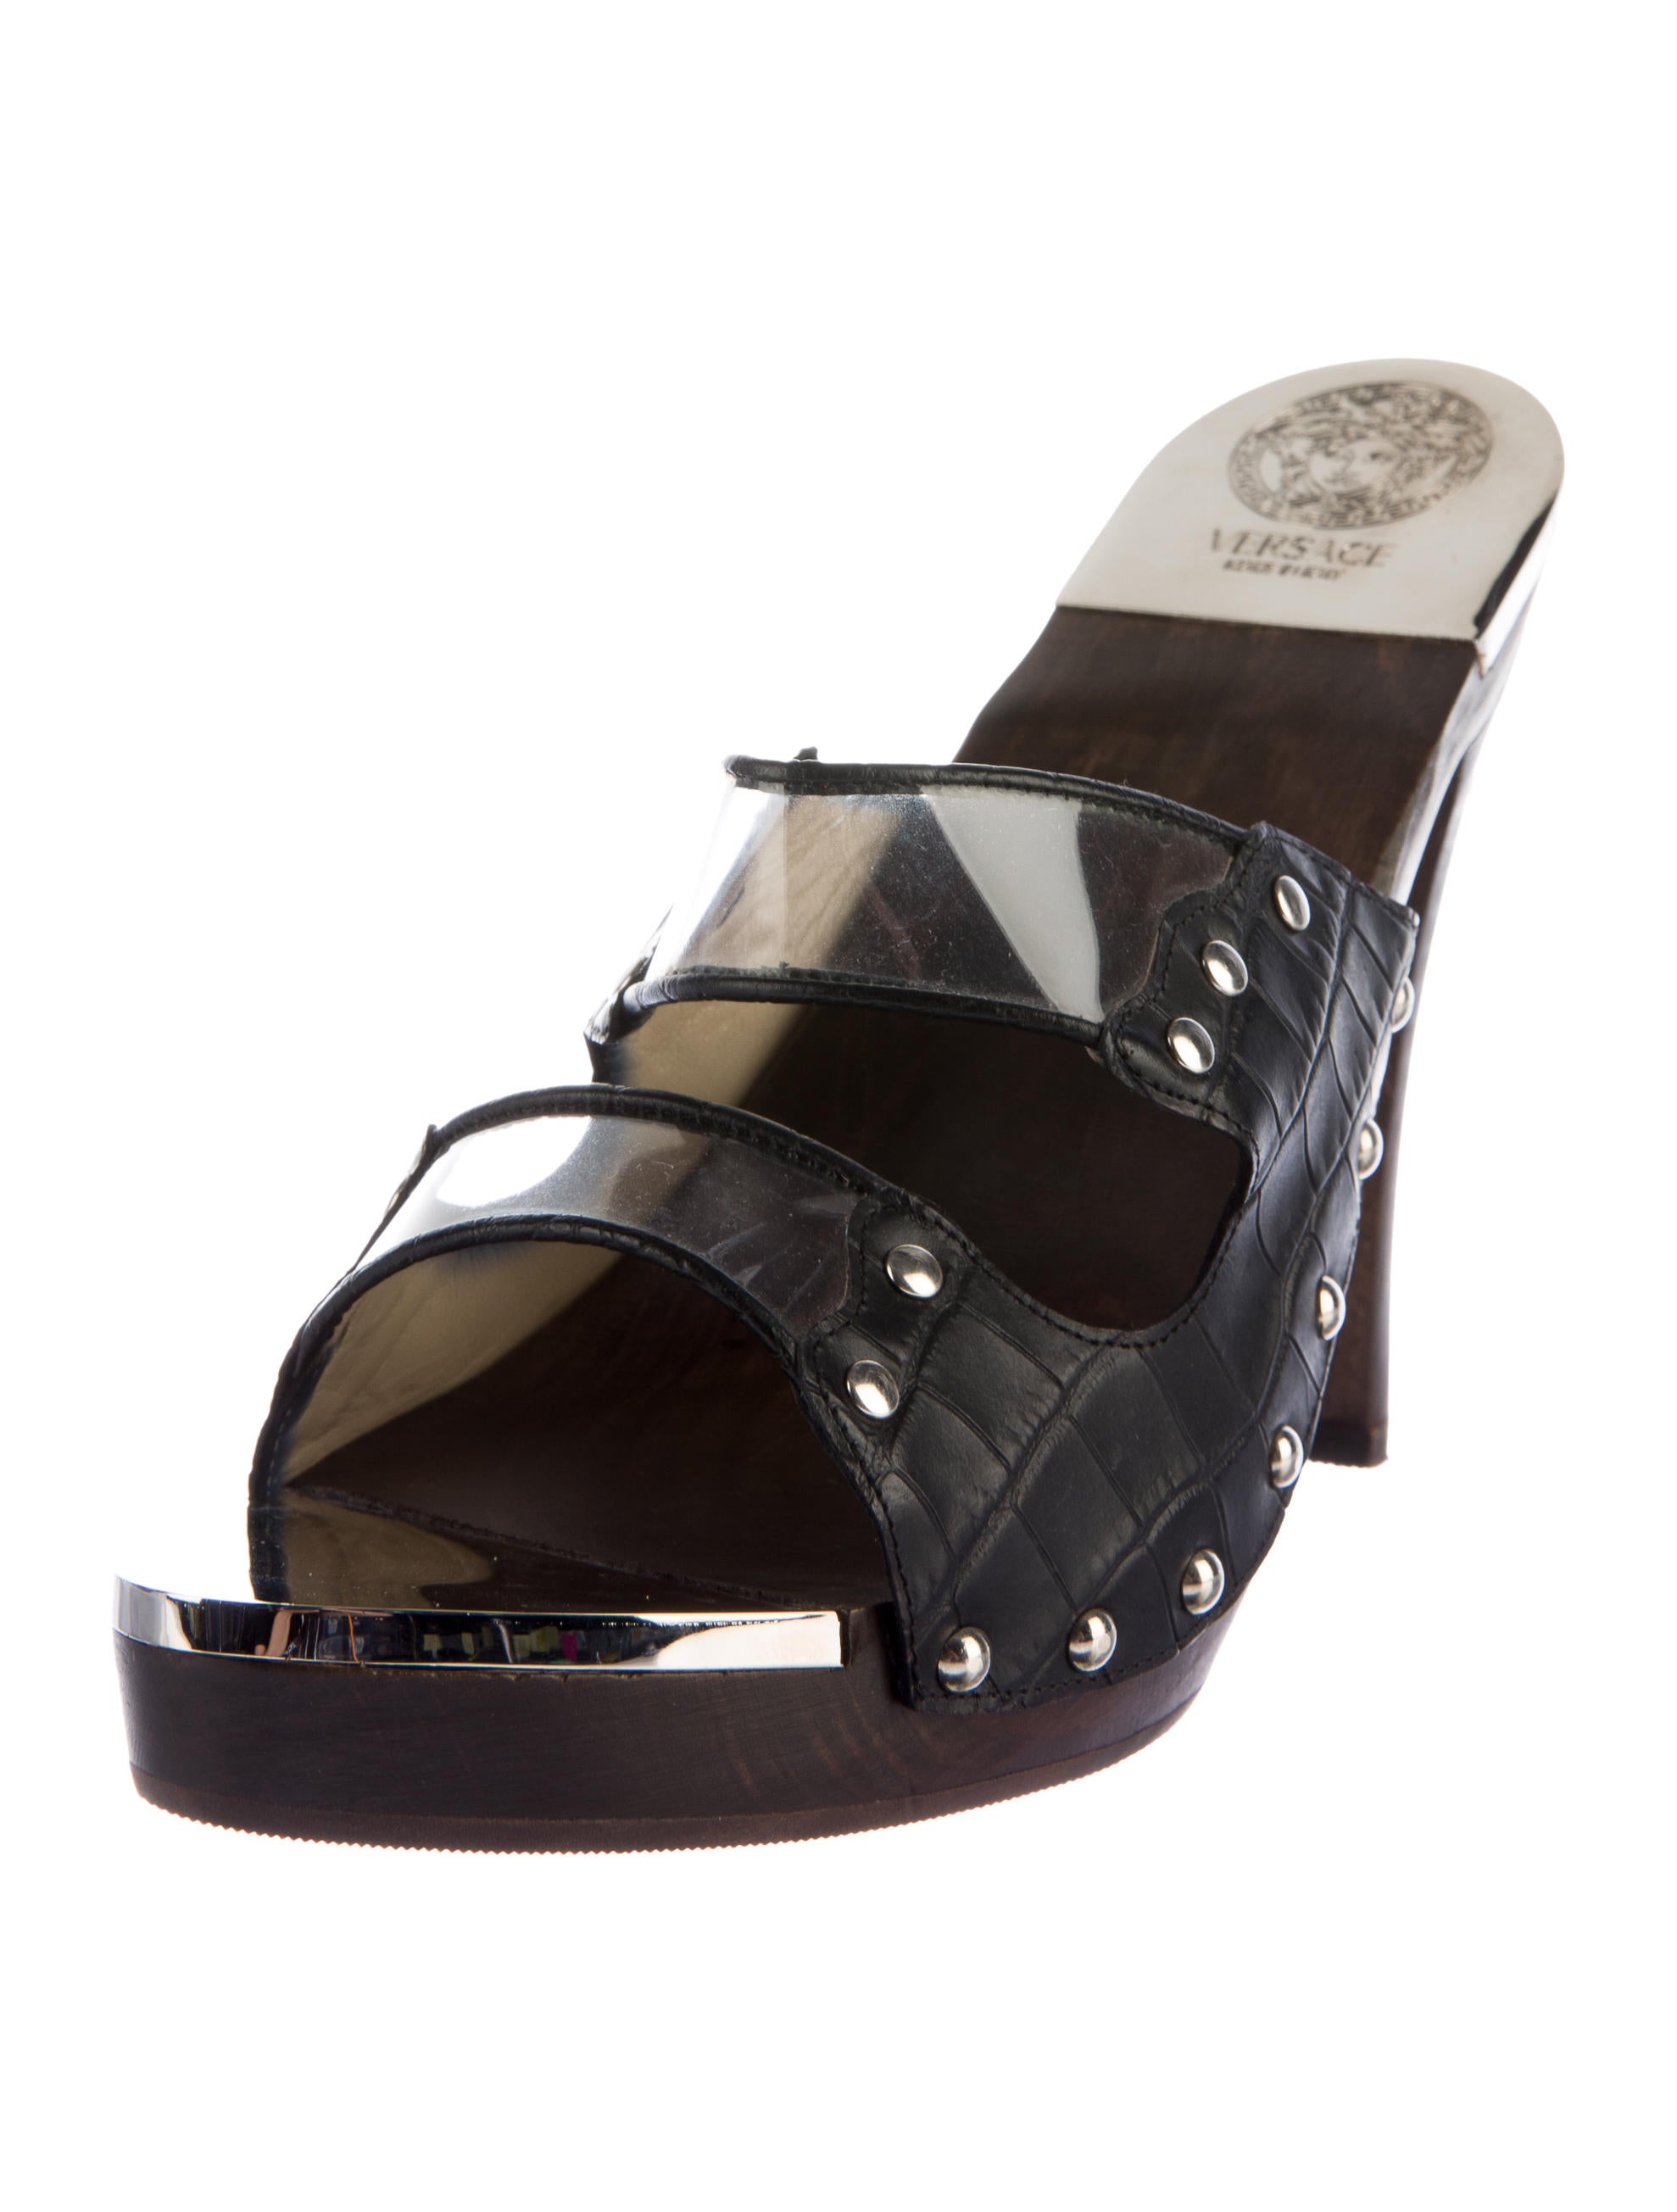 Versace Studded Embossed Leather Slide Sandals - Shoes - VES30083 | The RealReal